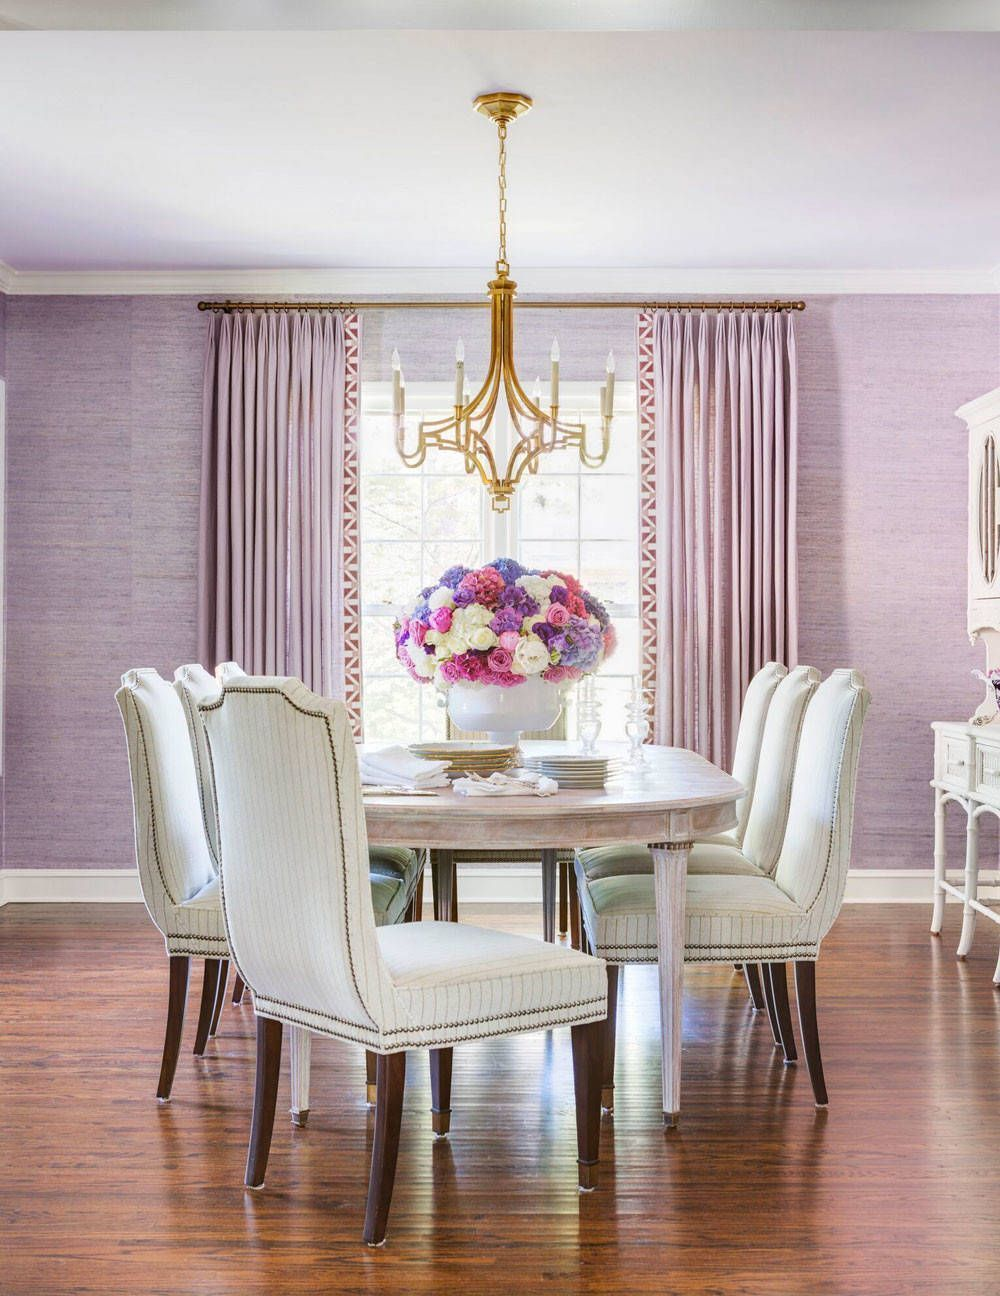 48 Exciting Dining Room Design Ideas. #home #homedesign ... on home office workstation, laundry design ideas, sewing room design ideas, home office organization ideas, basement design ideas, bathroom design ideas, rustic home office ideas, home office built in designs, home office desk, home office library, den design ideas, home office bookcases, home office pinterest, creative office ideas, foyer design ideas, home office ideas for small spaces, family room design ideas, home office furniture, home office on a budget, modern bathroom ideas,